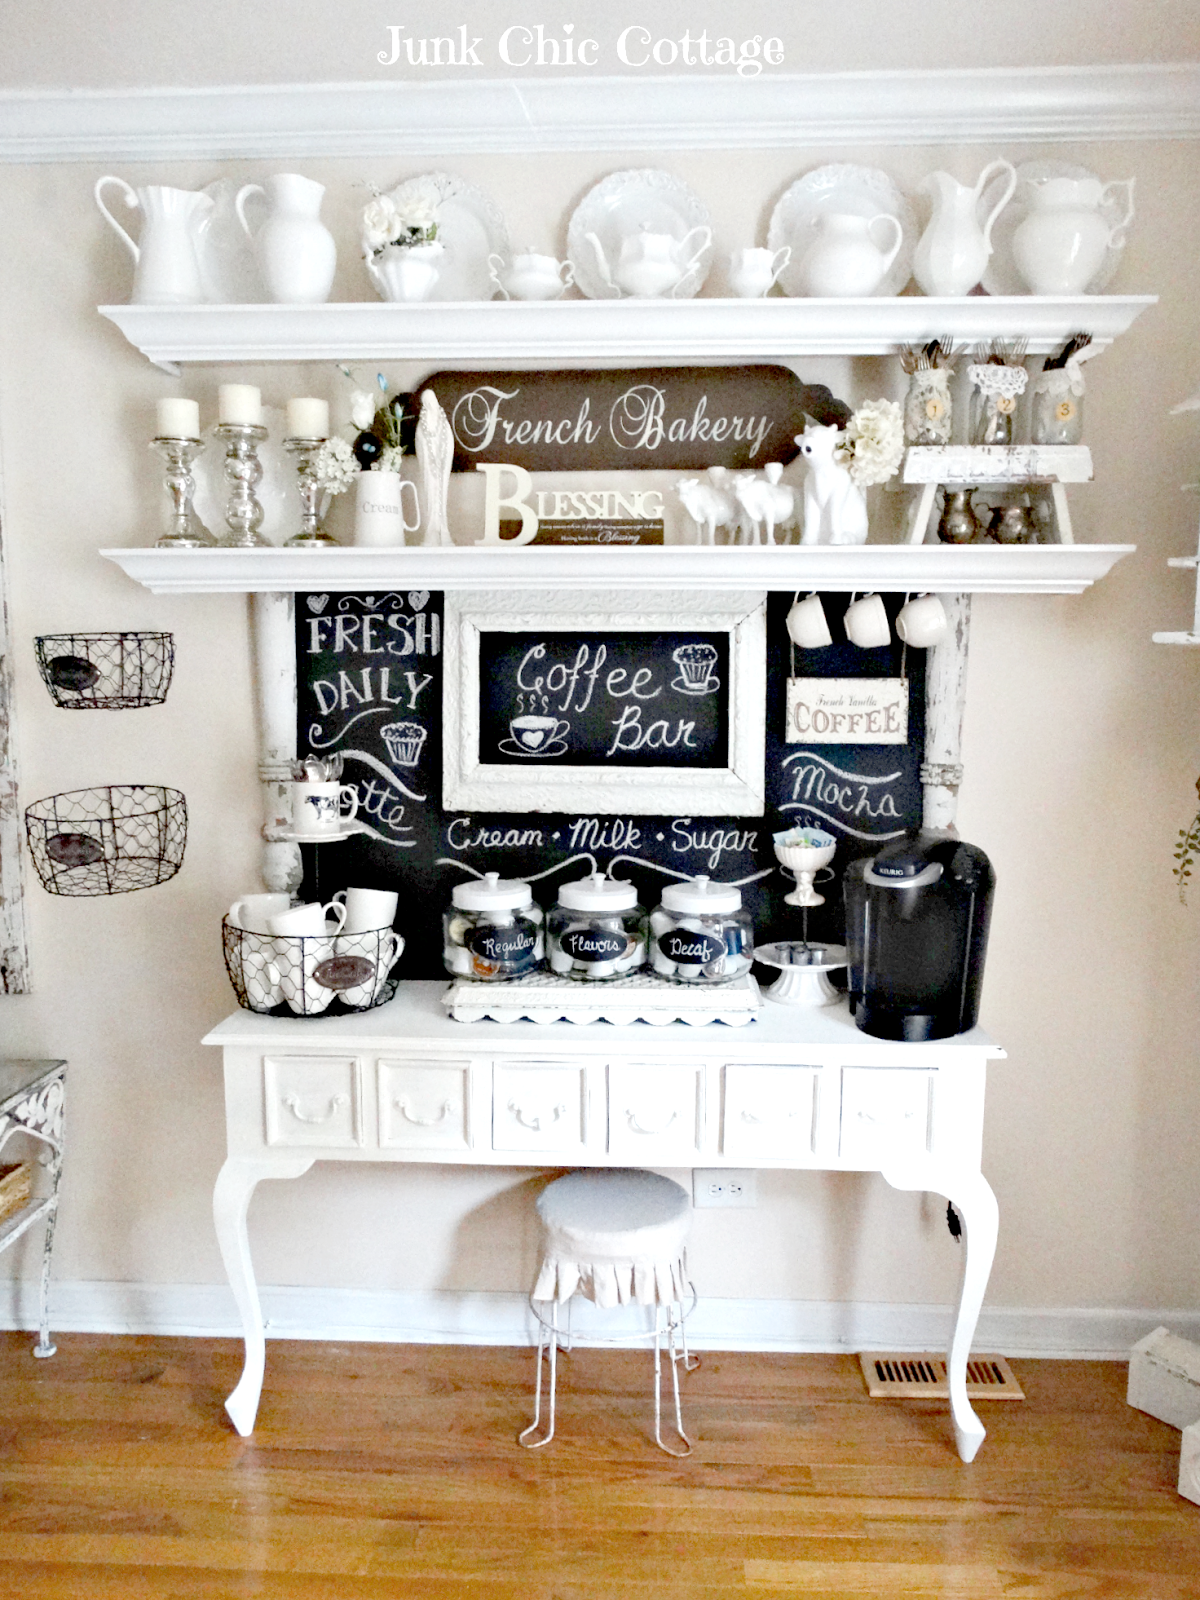 40 Ideas To Create The Best Coffee Station | Junk chic cottage ...